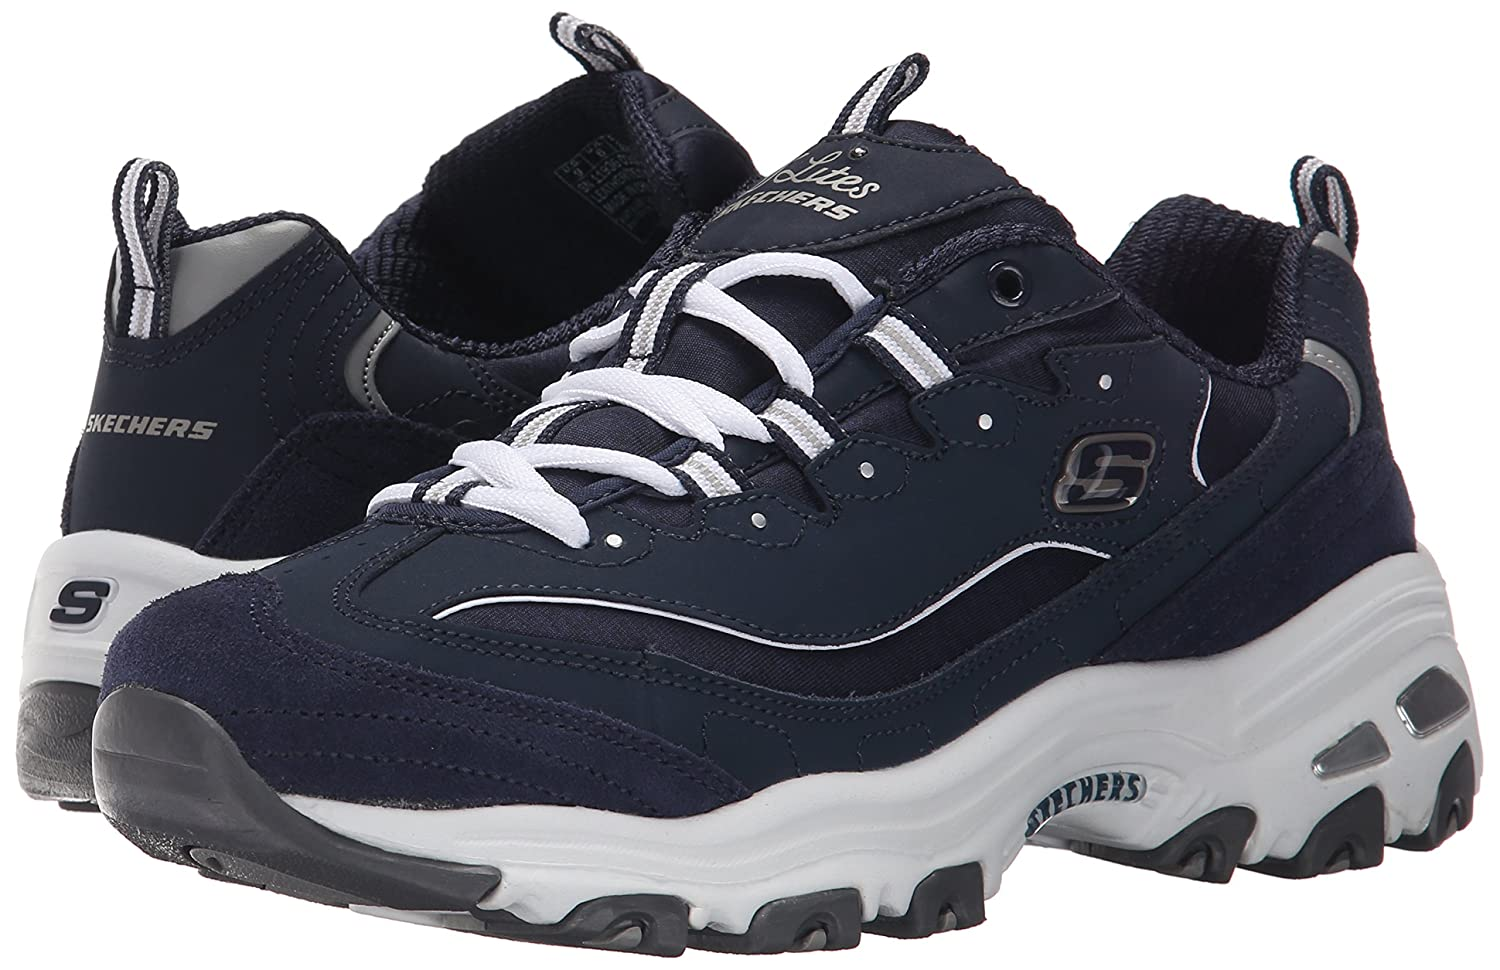 Skechers-D-039-Lites-Women-039-s-Casual-Lightweight-Fashion-Sneakers-Athletic-Shoes thumbnail 132